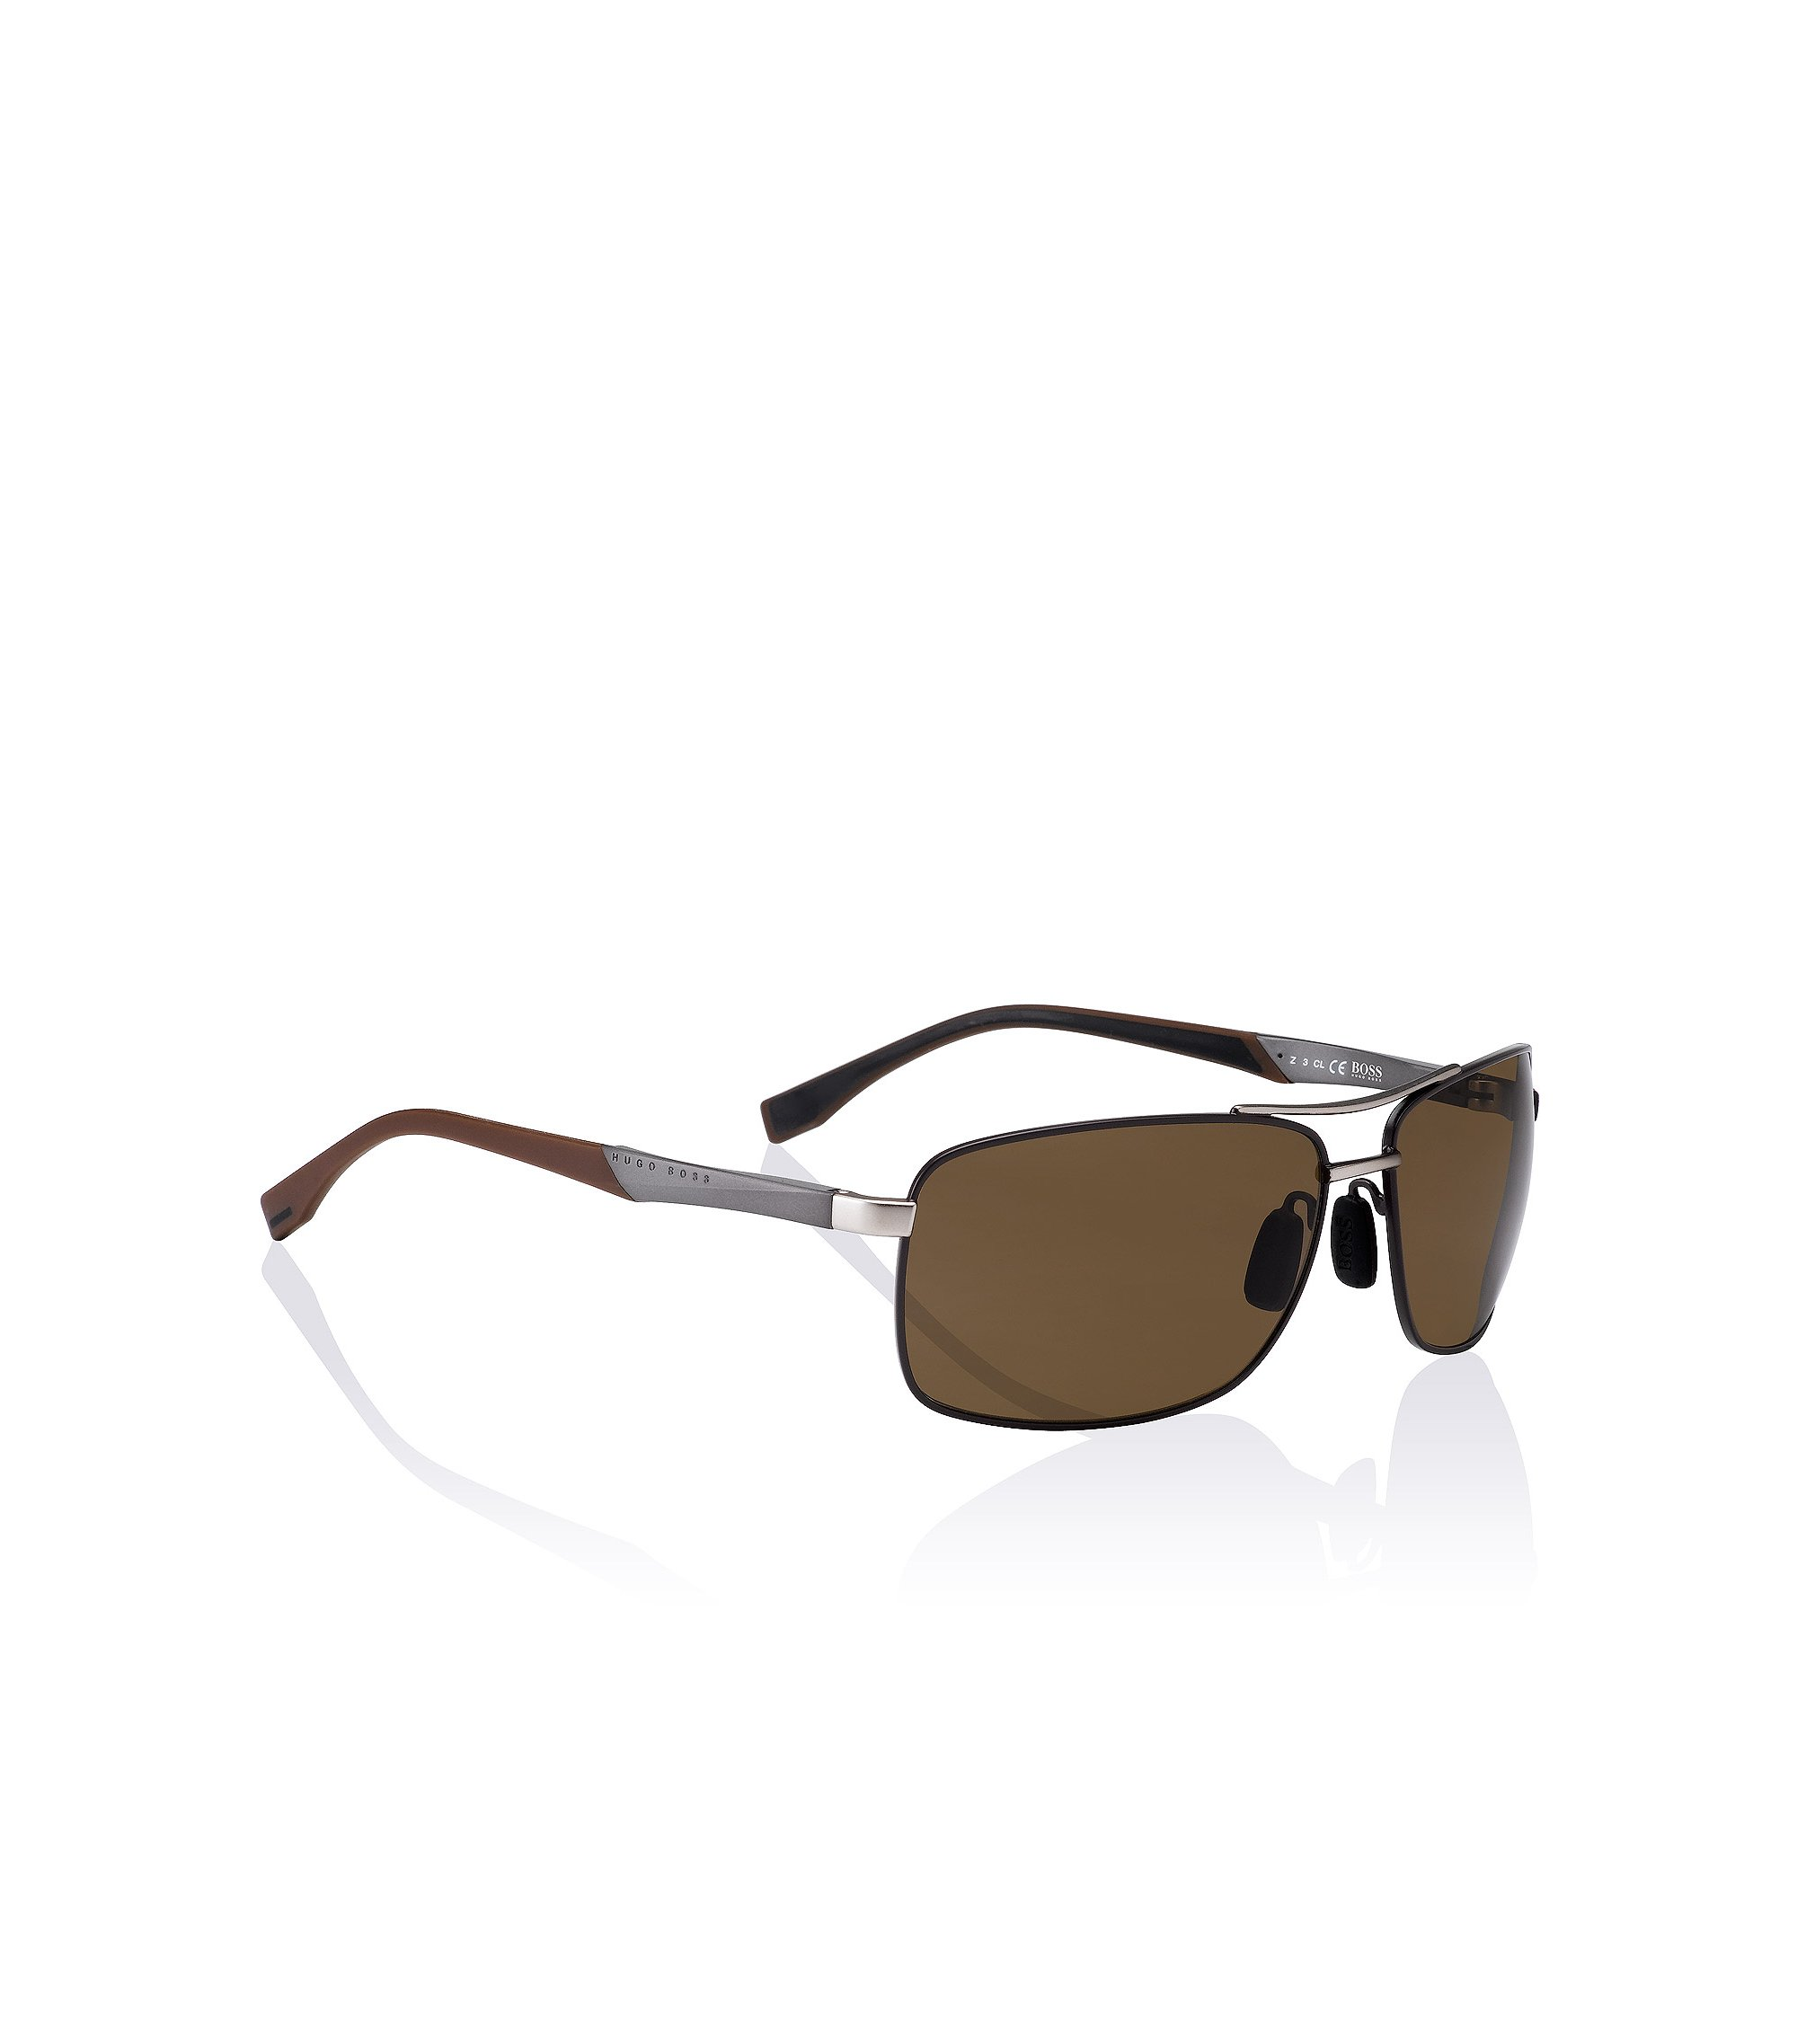 Navigator-Sonnenbrille Men ´BOSS 0697/P/S`, Assorted-Pre-Pack